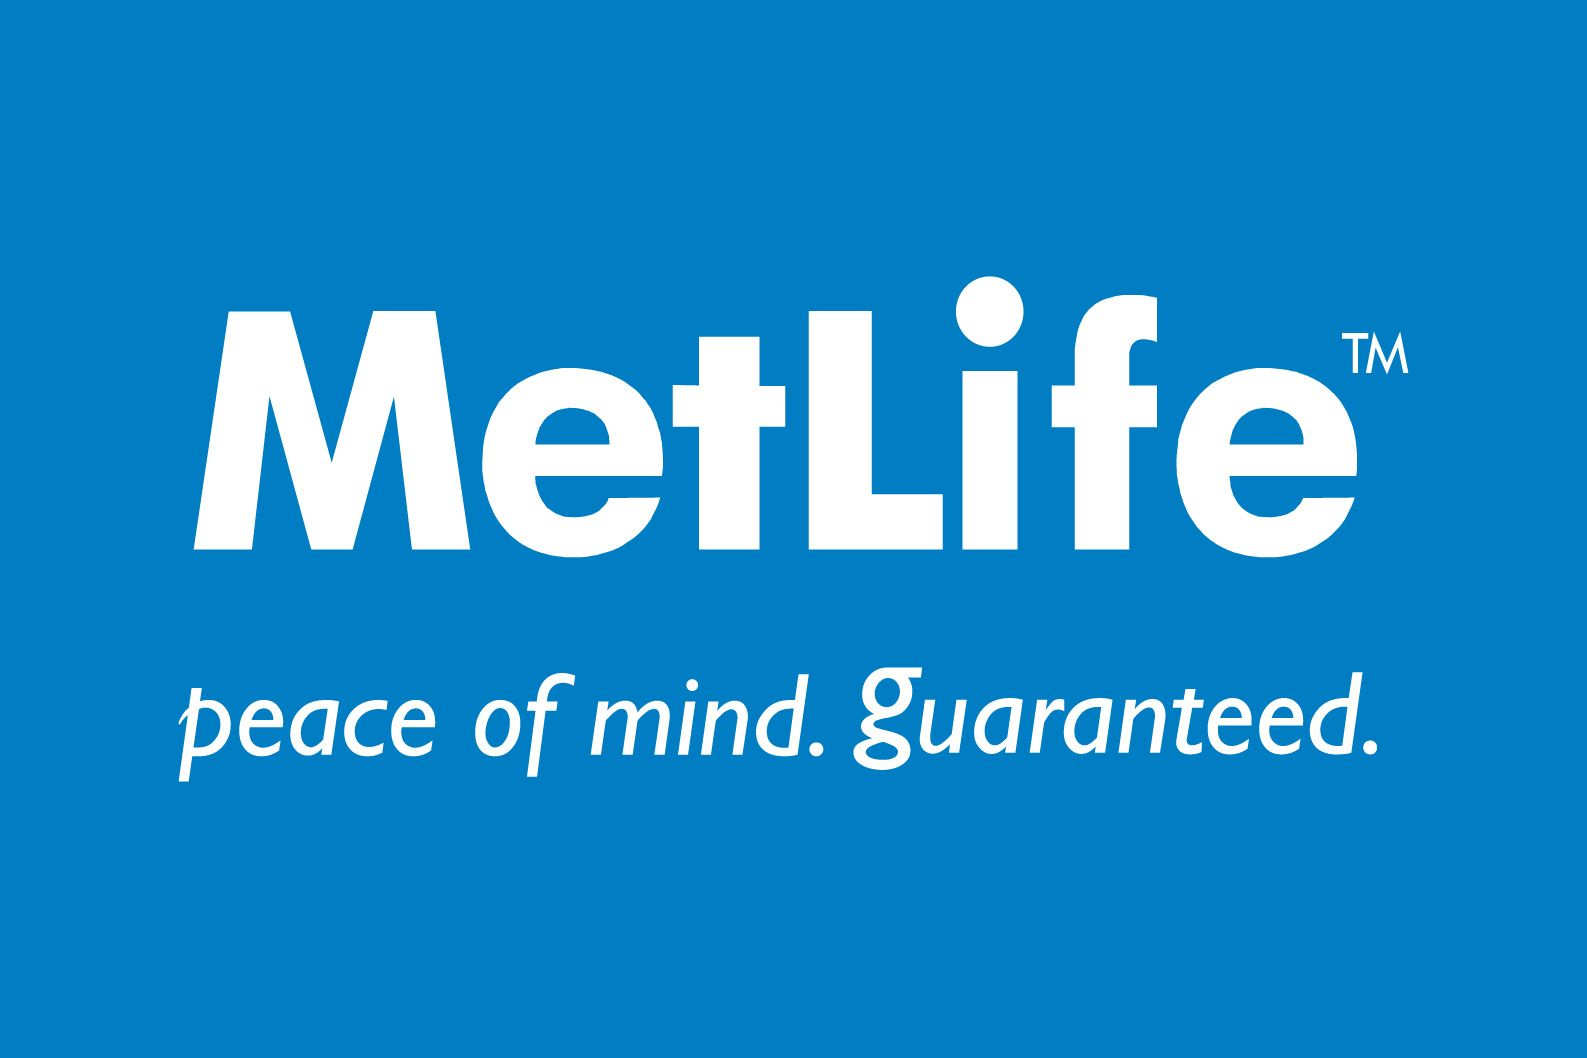 Met Life Insurance >> Metlife Mutual Insurance Peace Of Mind Logos